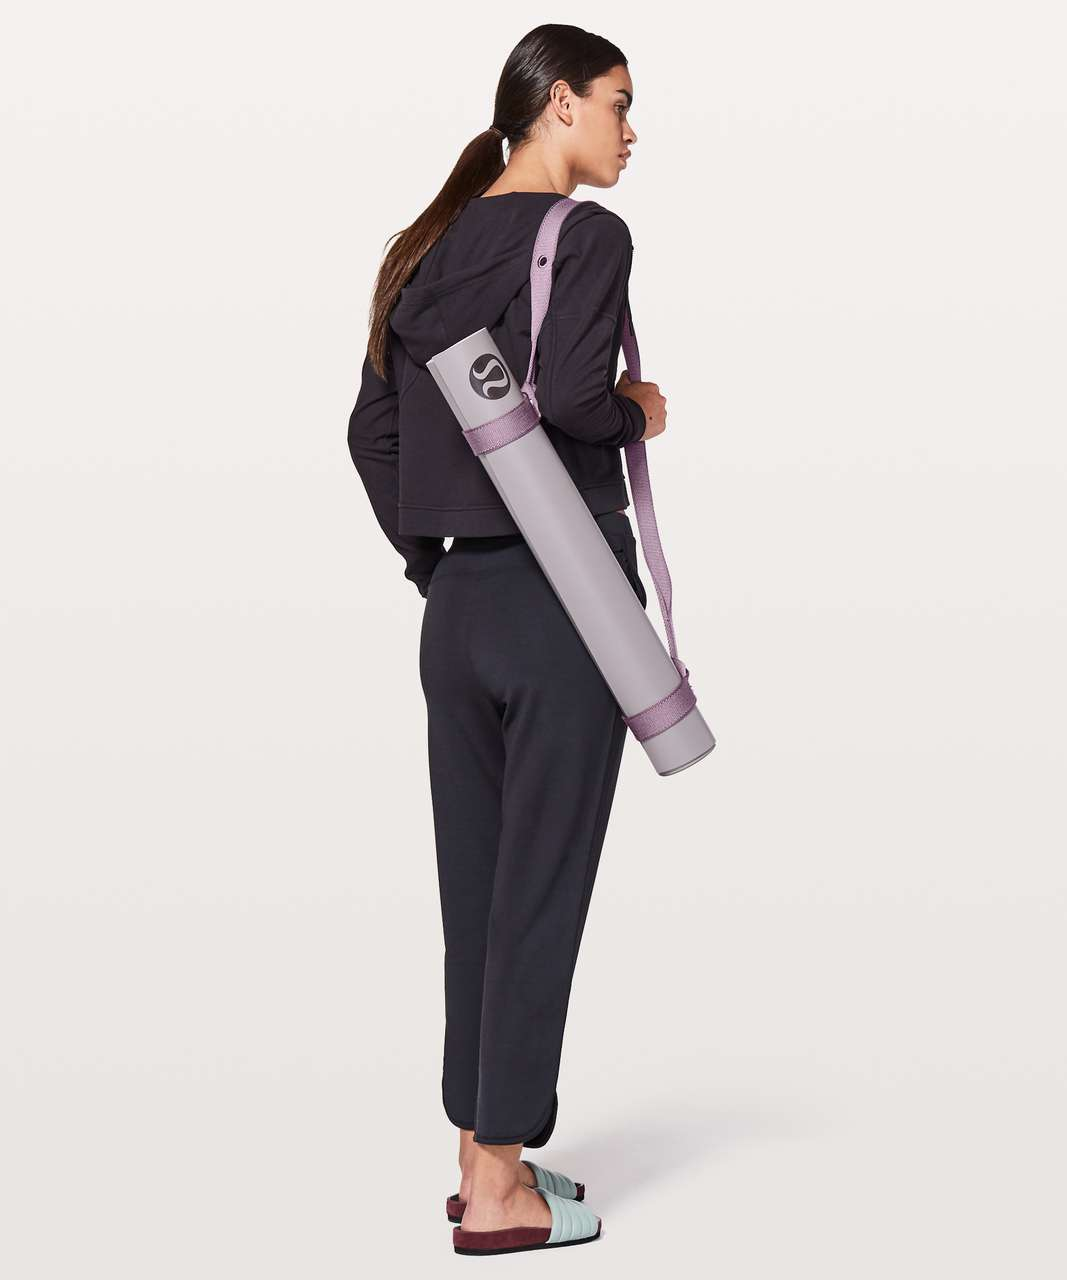 Lululemon Loop It Up Mat Strap *Eyelet - Smoked Mulberry / Violetta